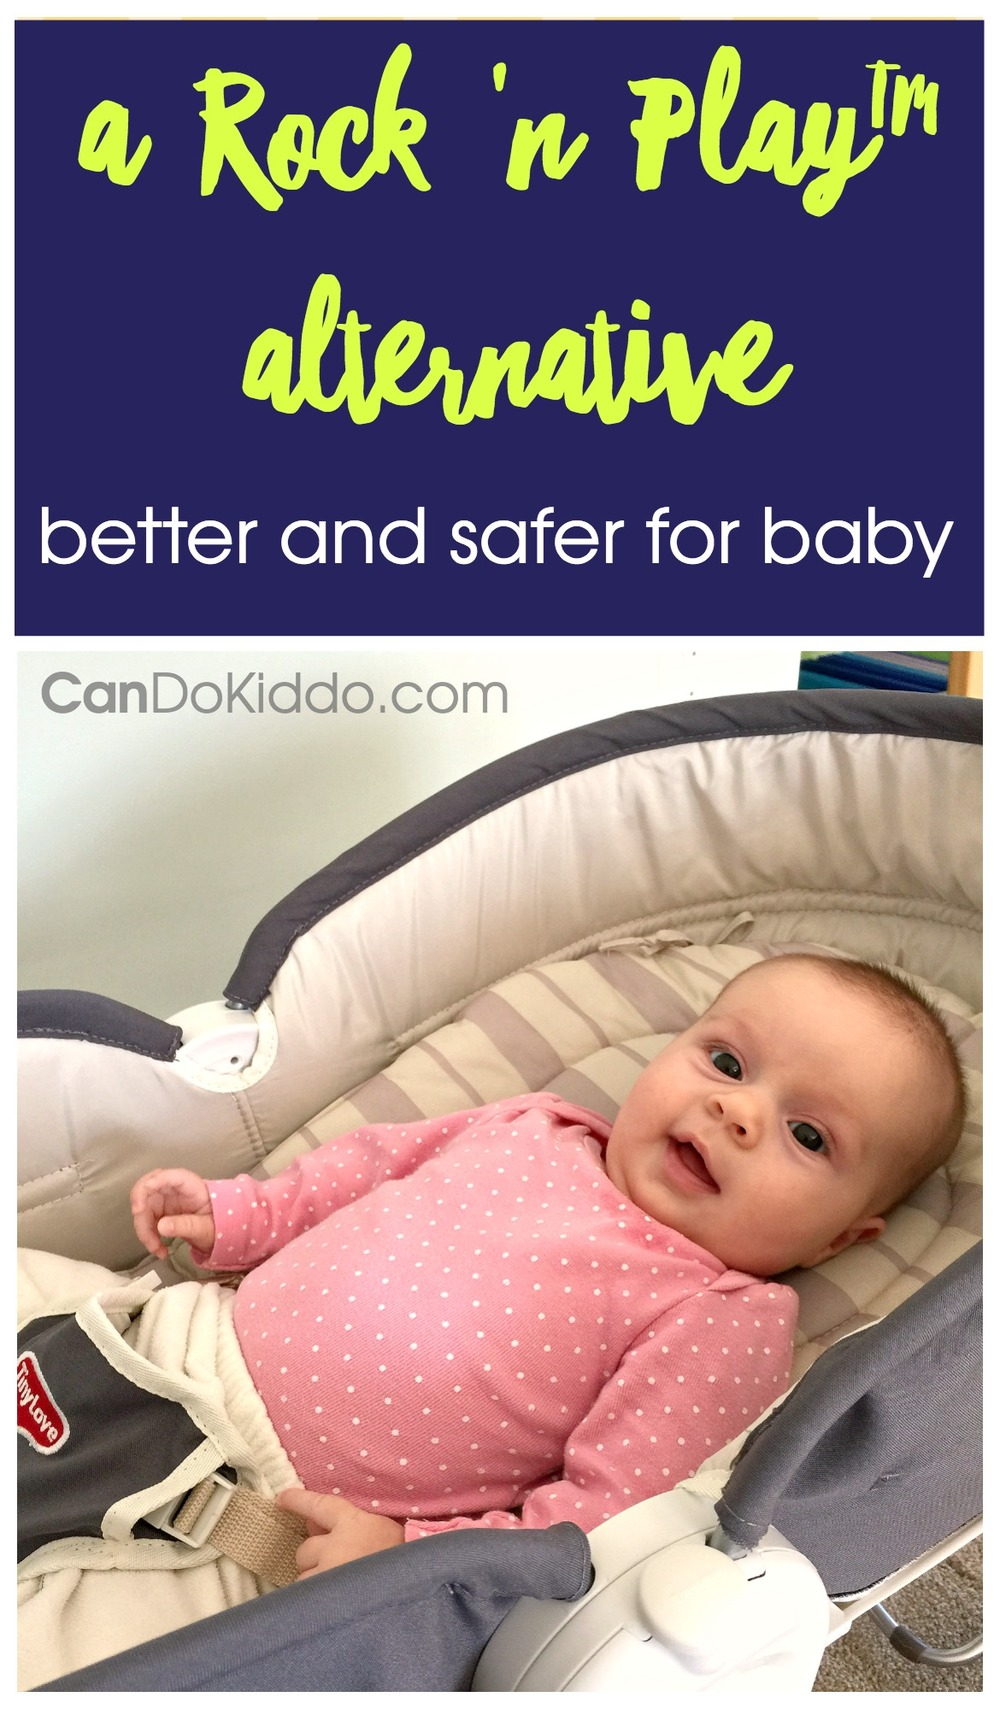 A better alternative to a Rock n Play. www.candokiddo.com